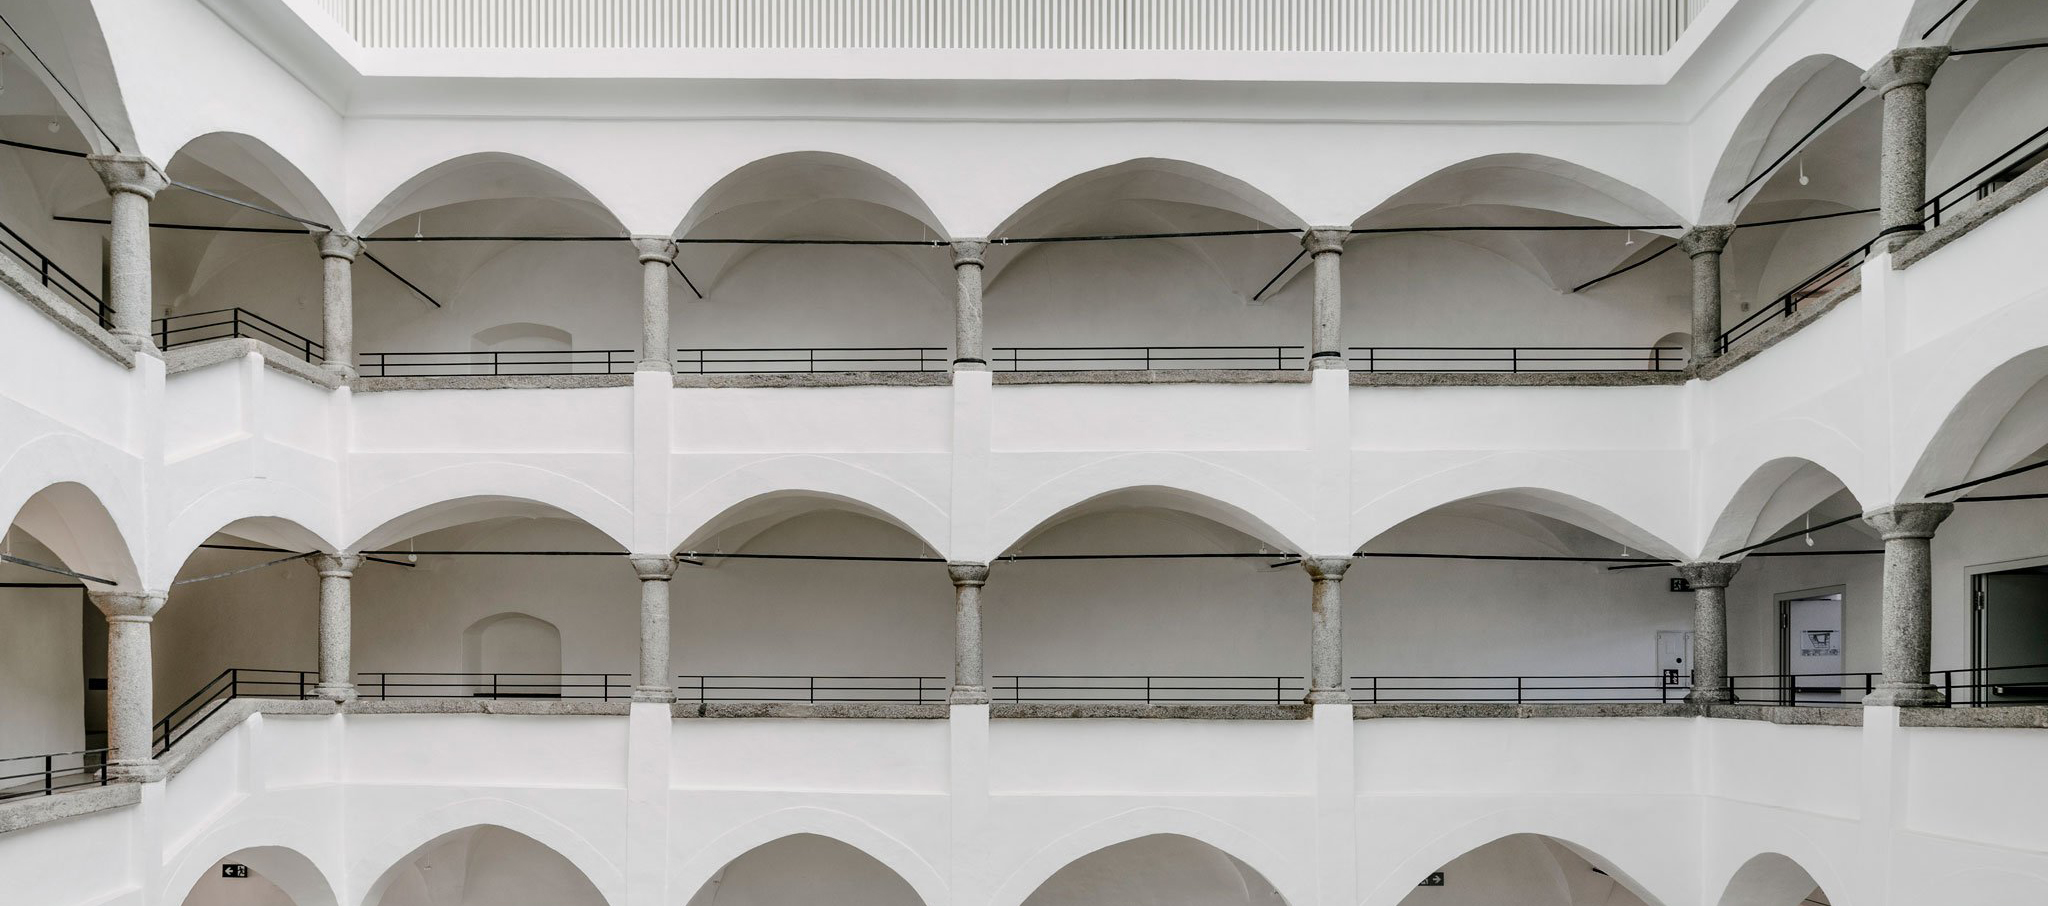 Renovation historical building, interior view. Brunico School of Music by Barozzi & Veiga. Photograph by Simon Menges